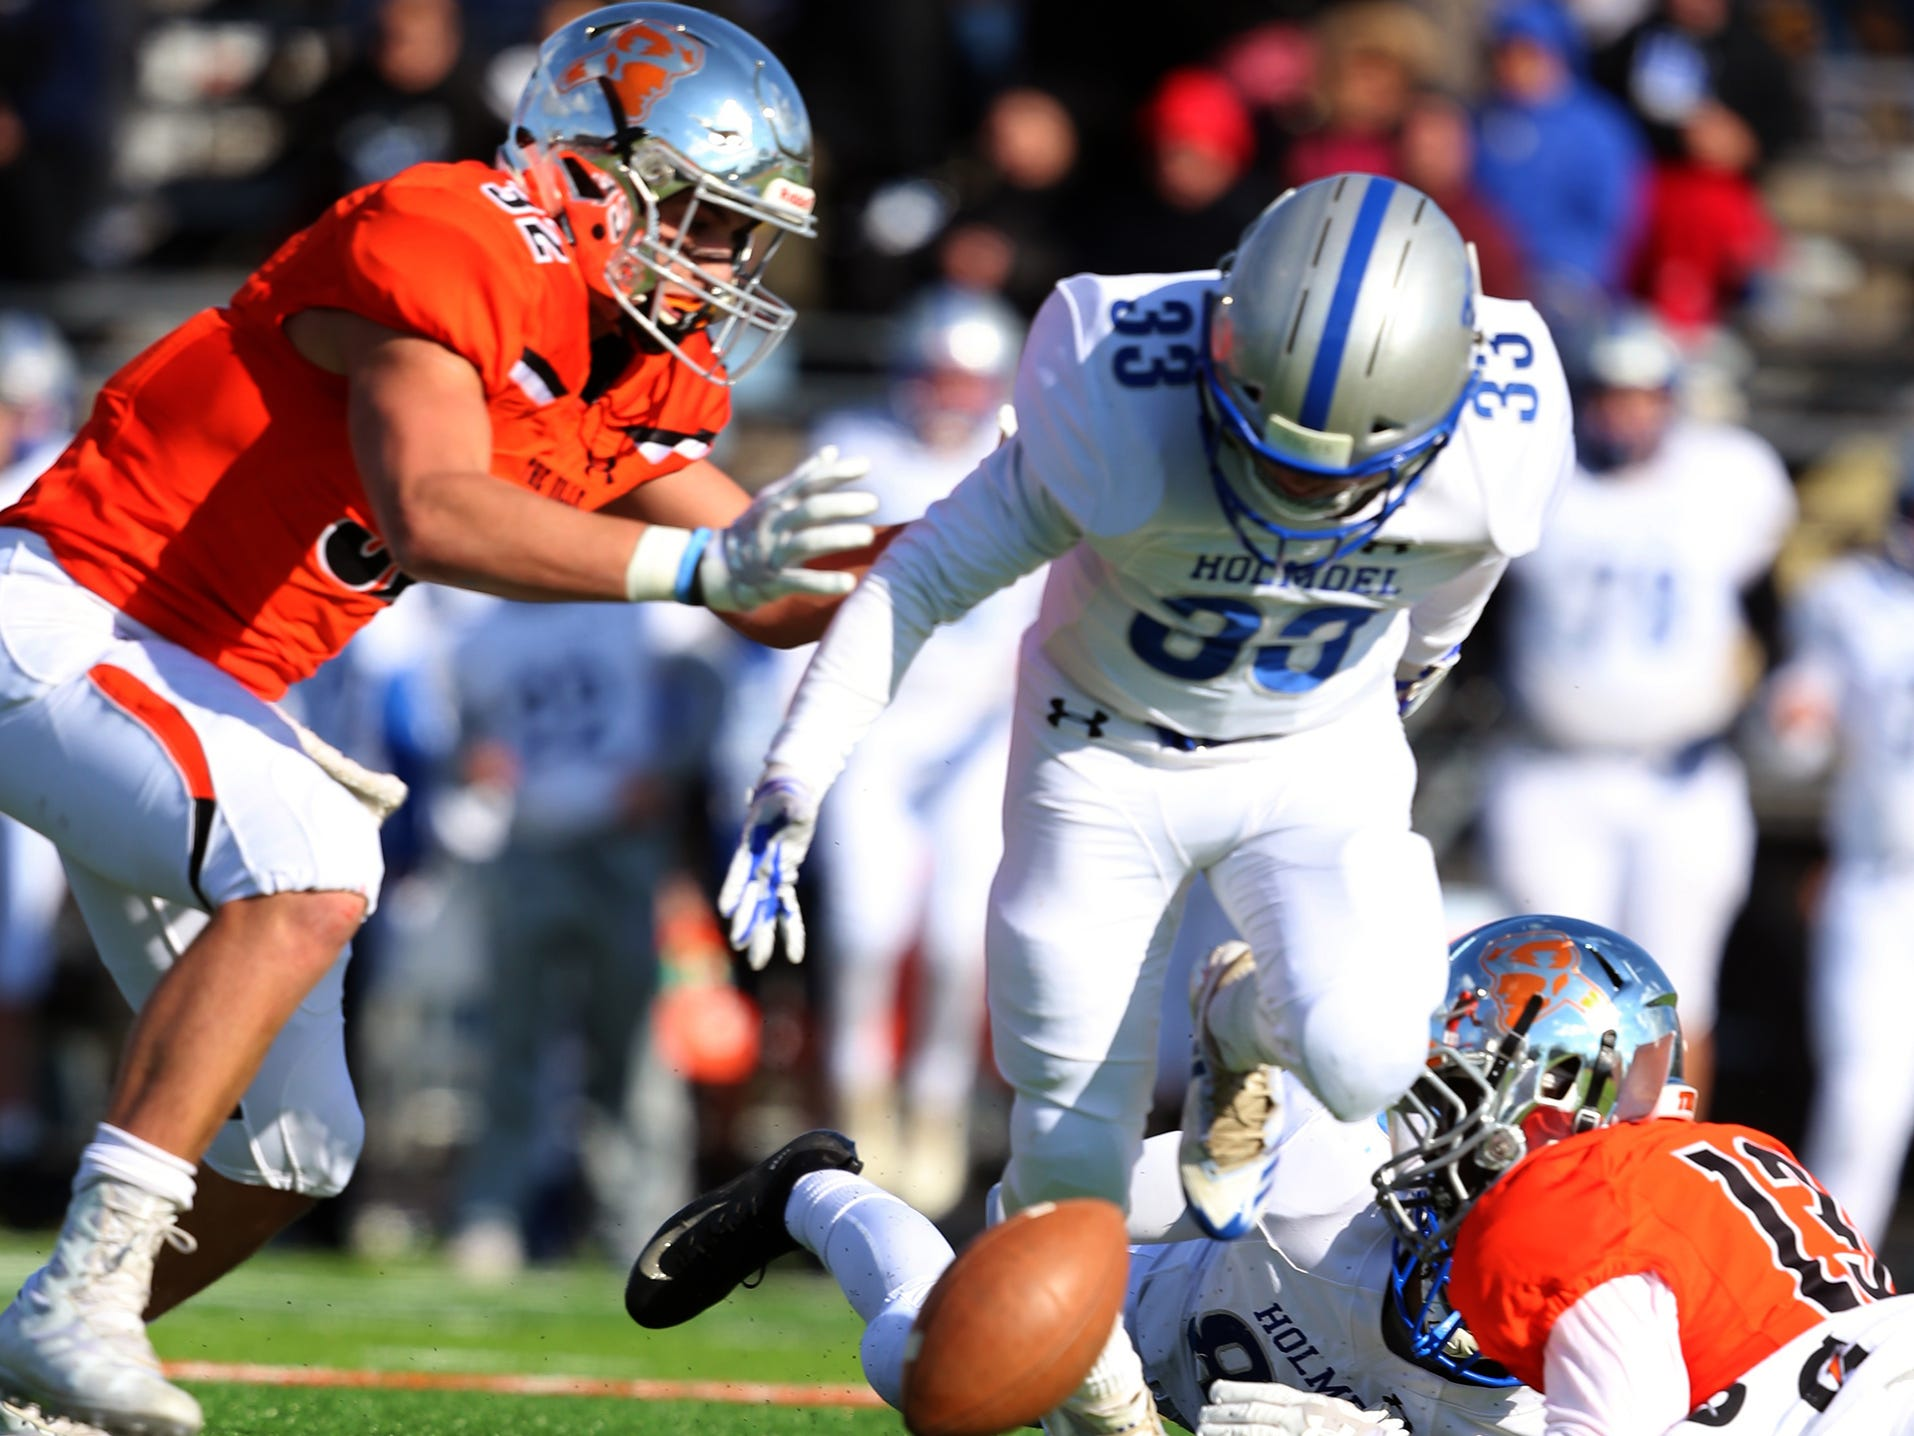 Holmdel at Somerville football in a Central Group III semifinal on Saturday, Nov. 10, 2018.